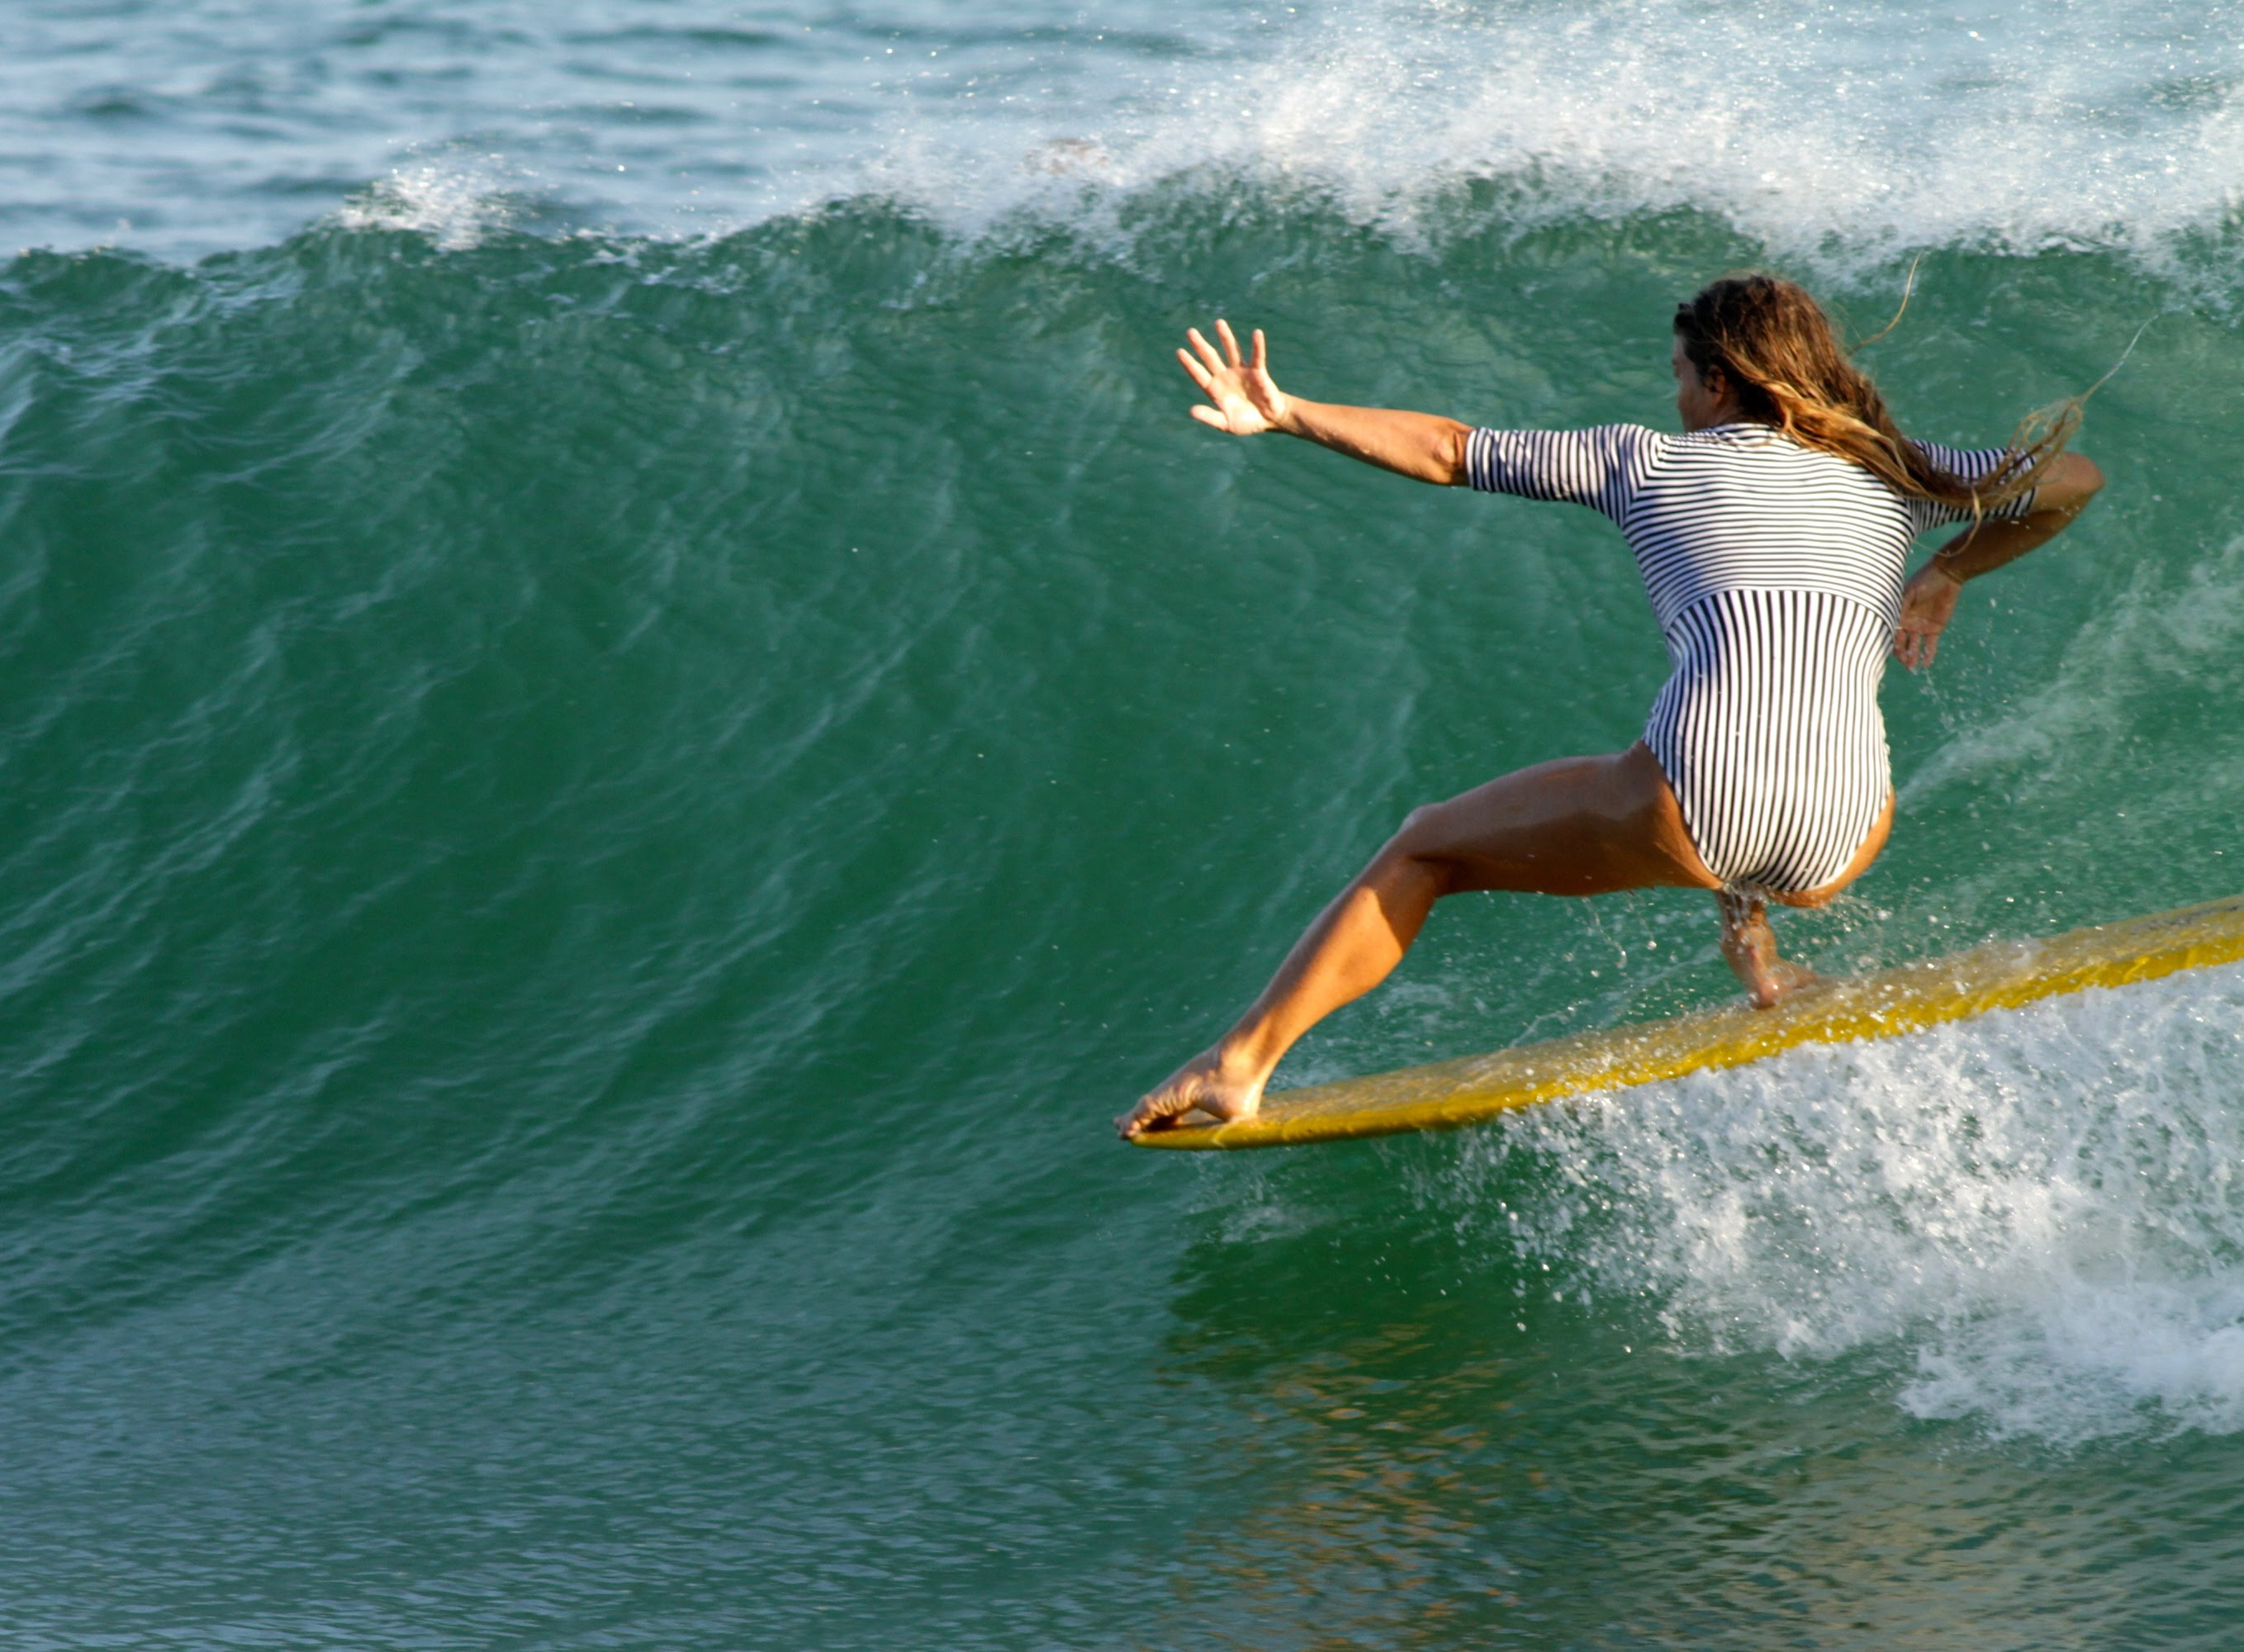 leah dawson, surfing, surf, longboard girls crew, gender equality, fun, cool, rad, sun, surf like a girl, like a woman